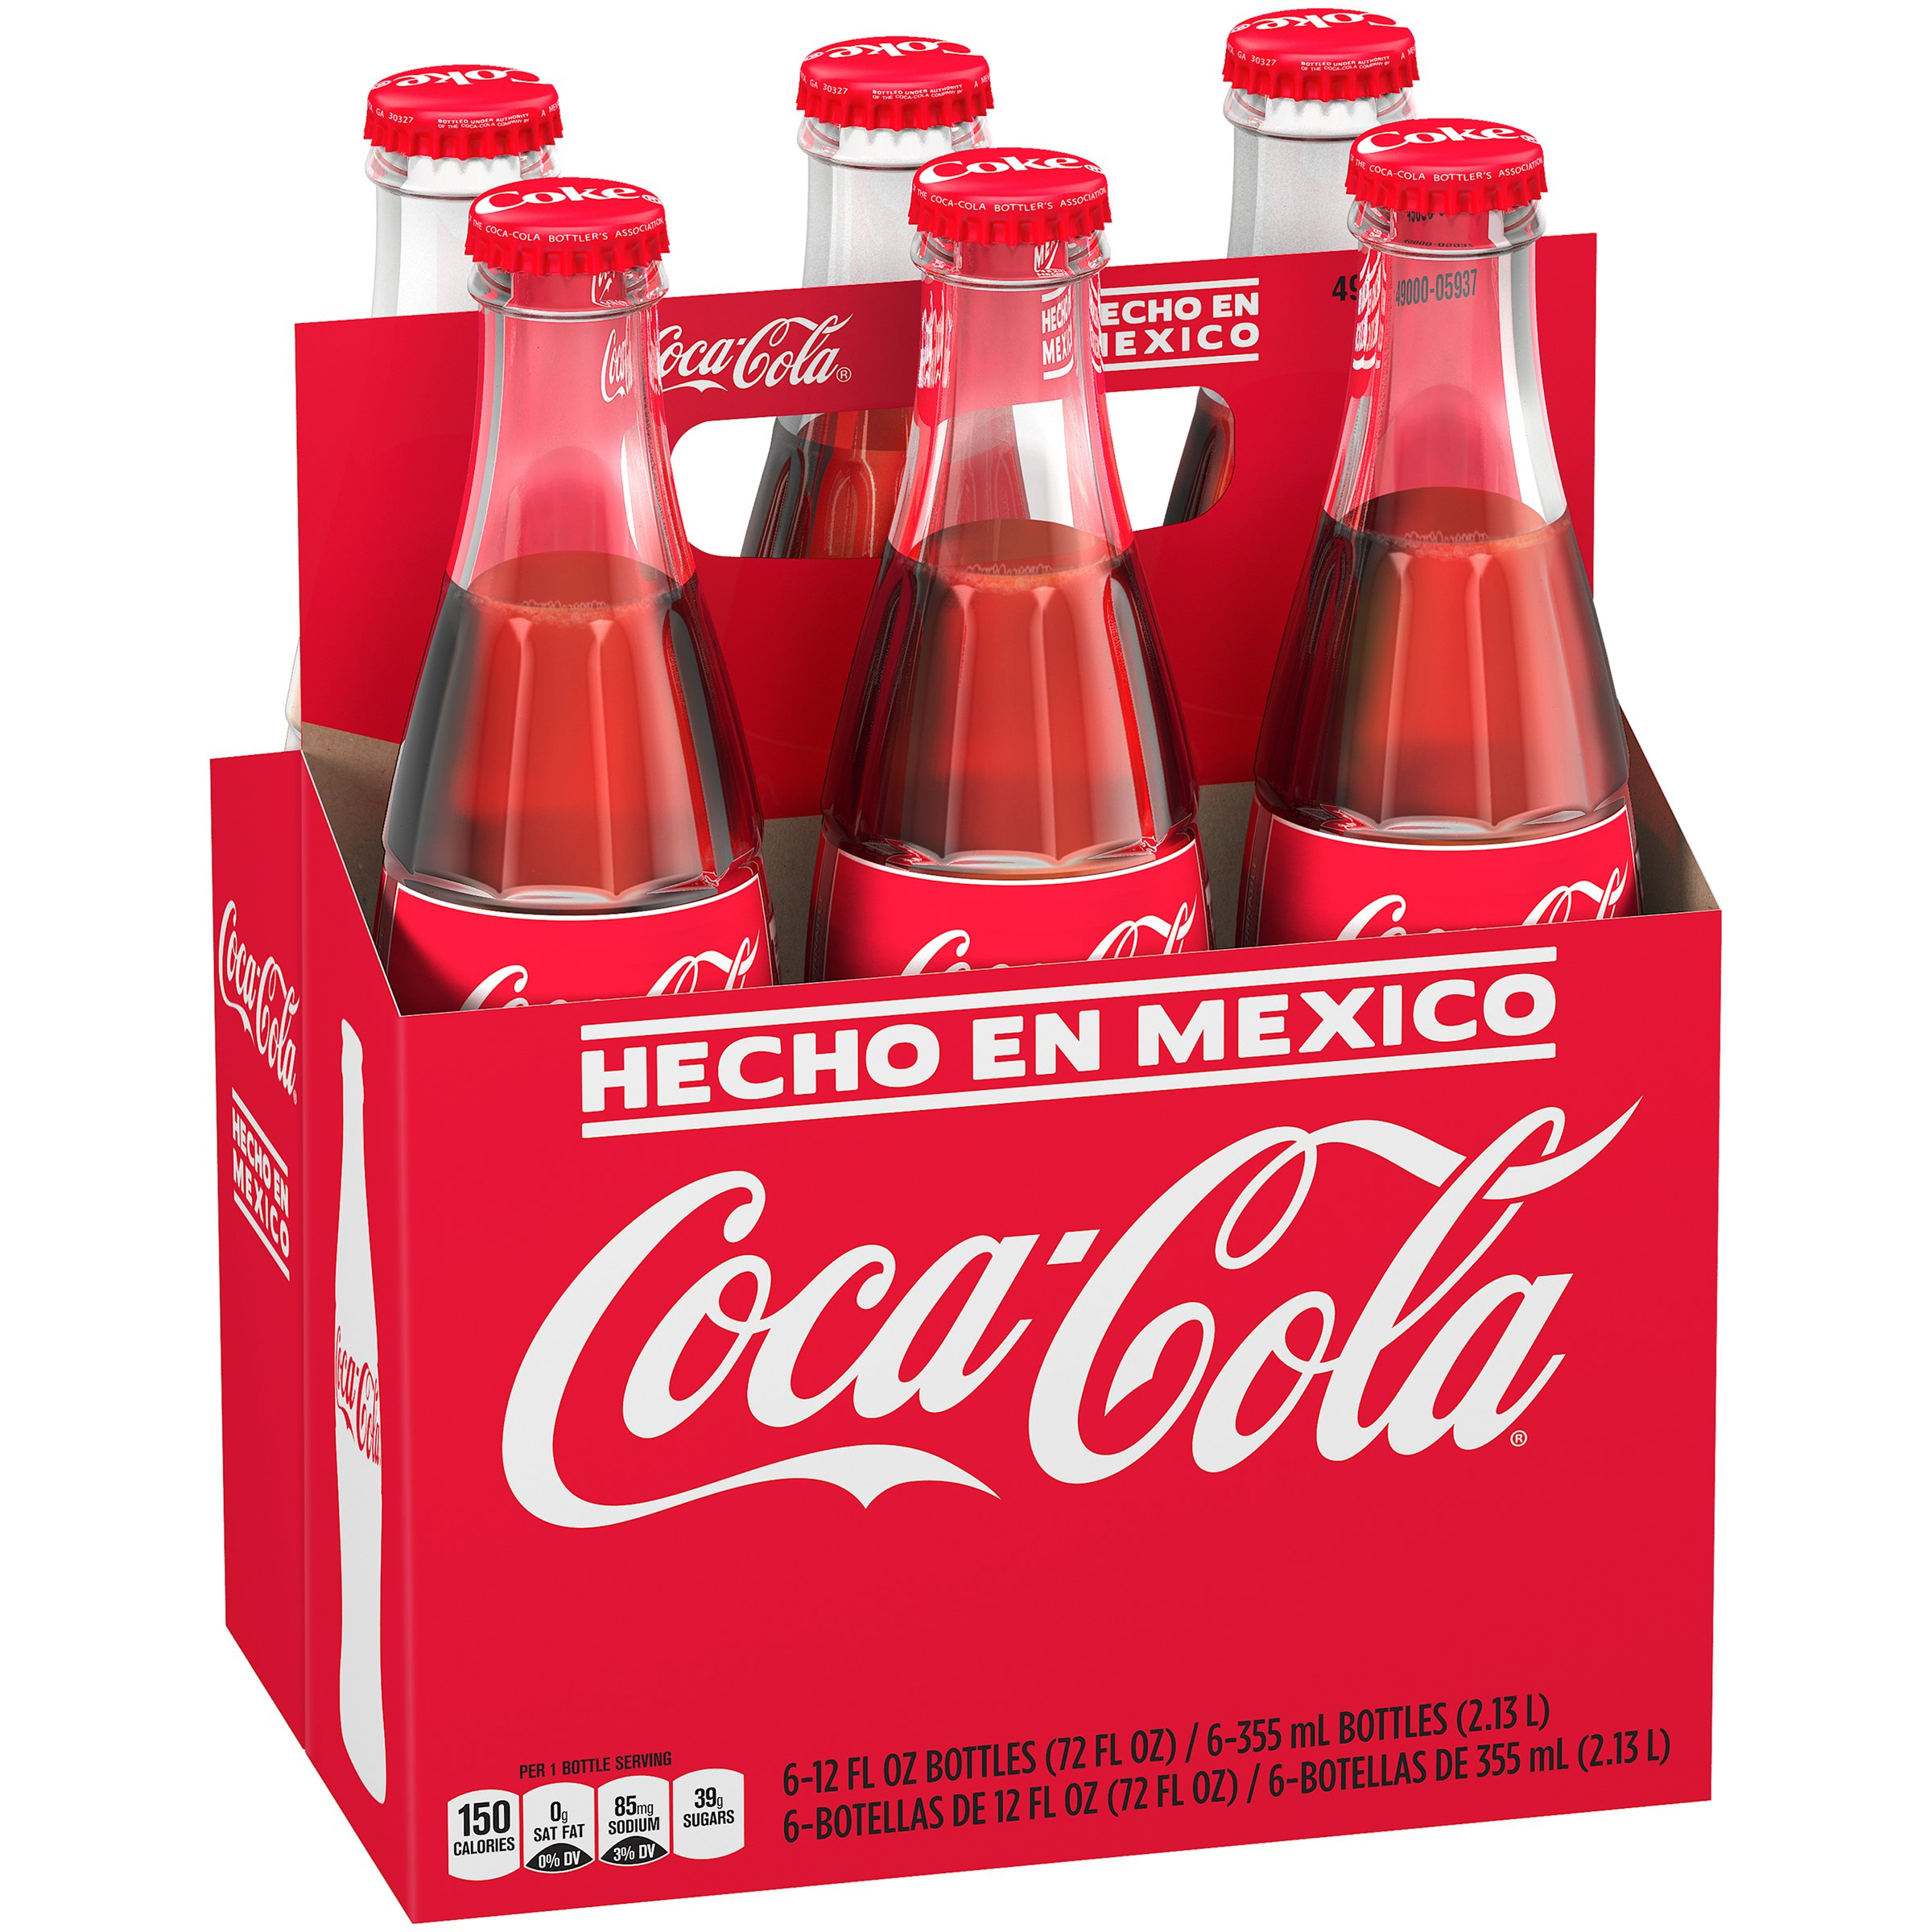 Mexican Coke Glass Bottle, 12 fl oz, 6 Pack